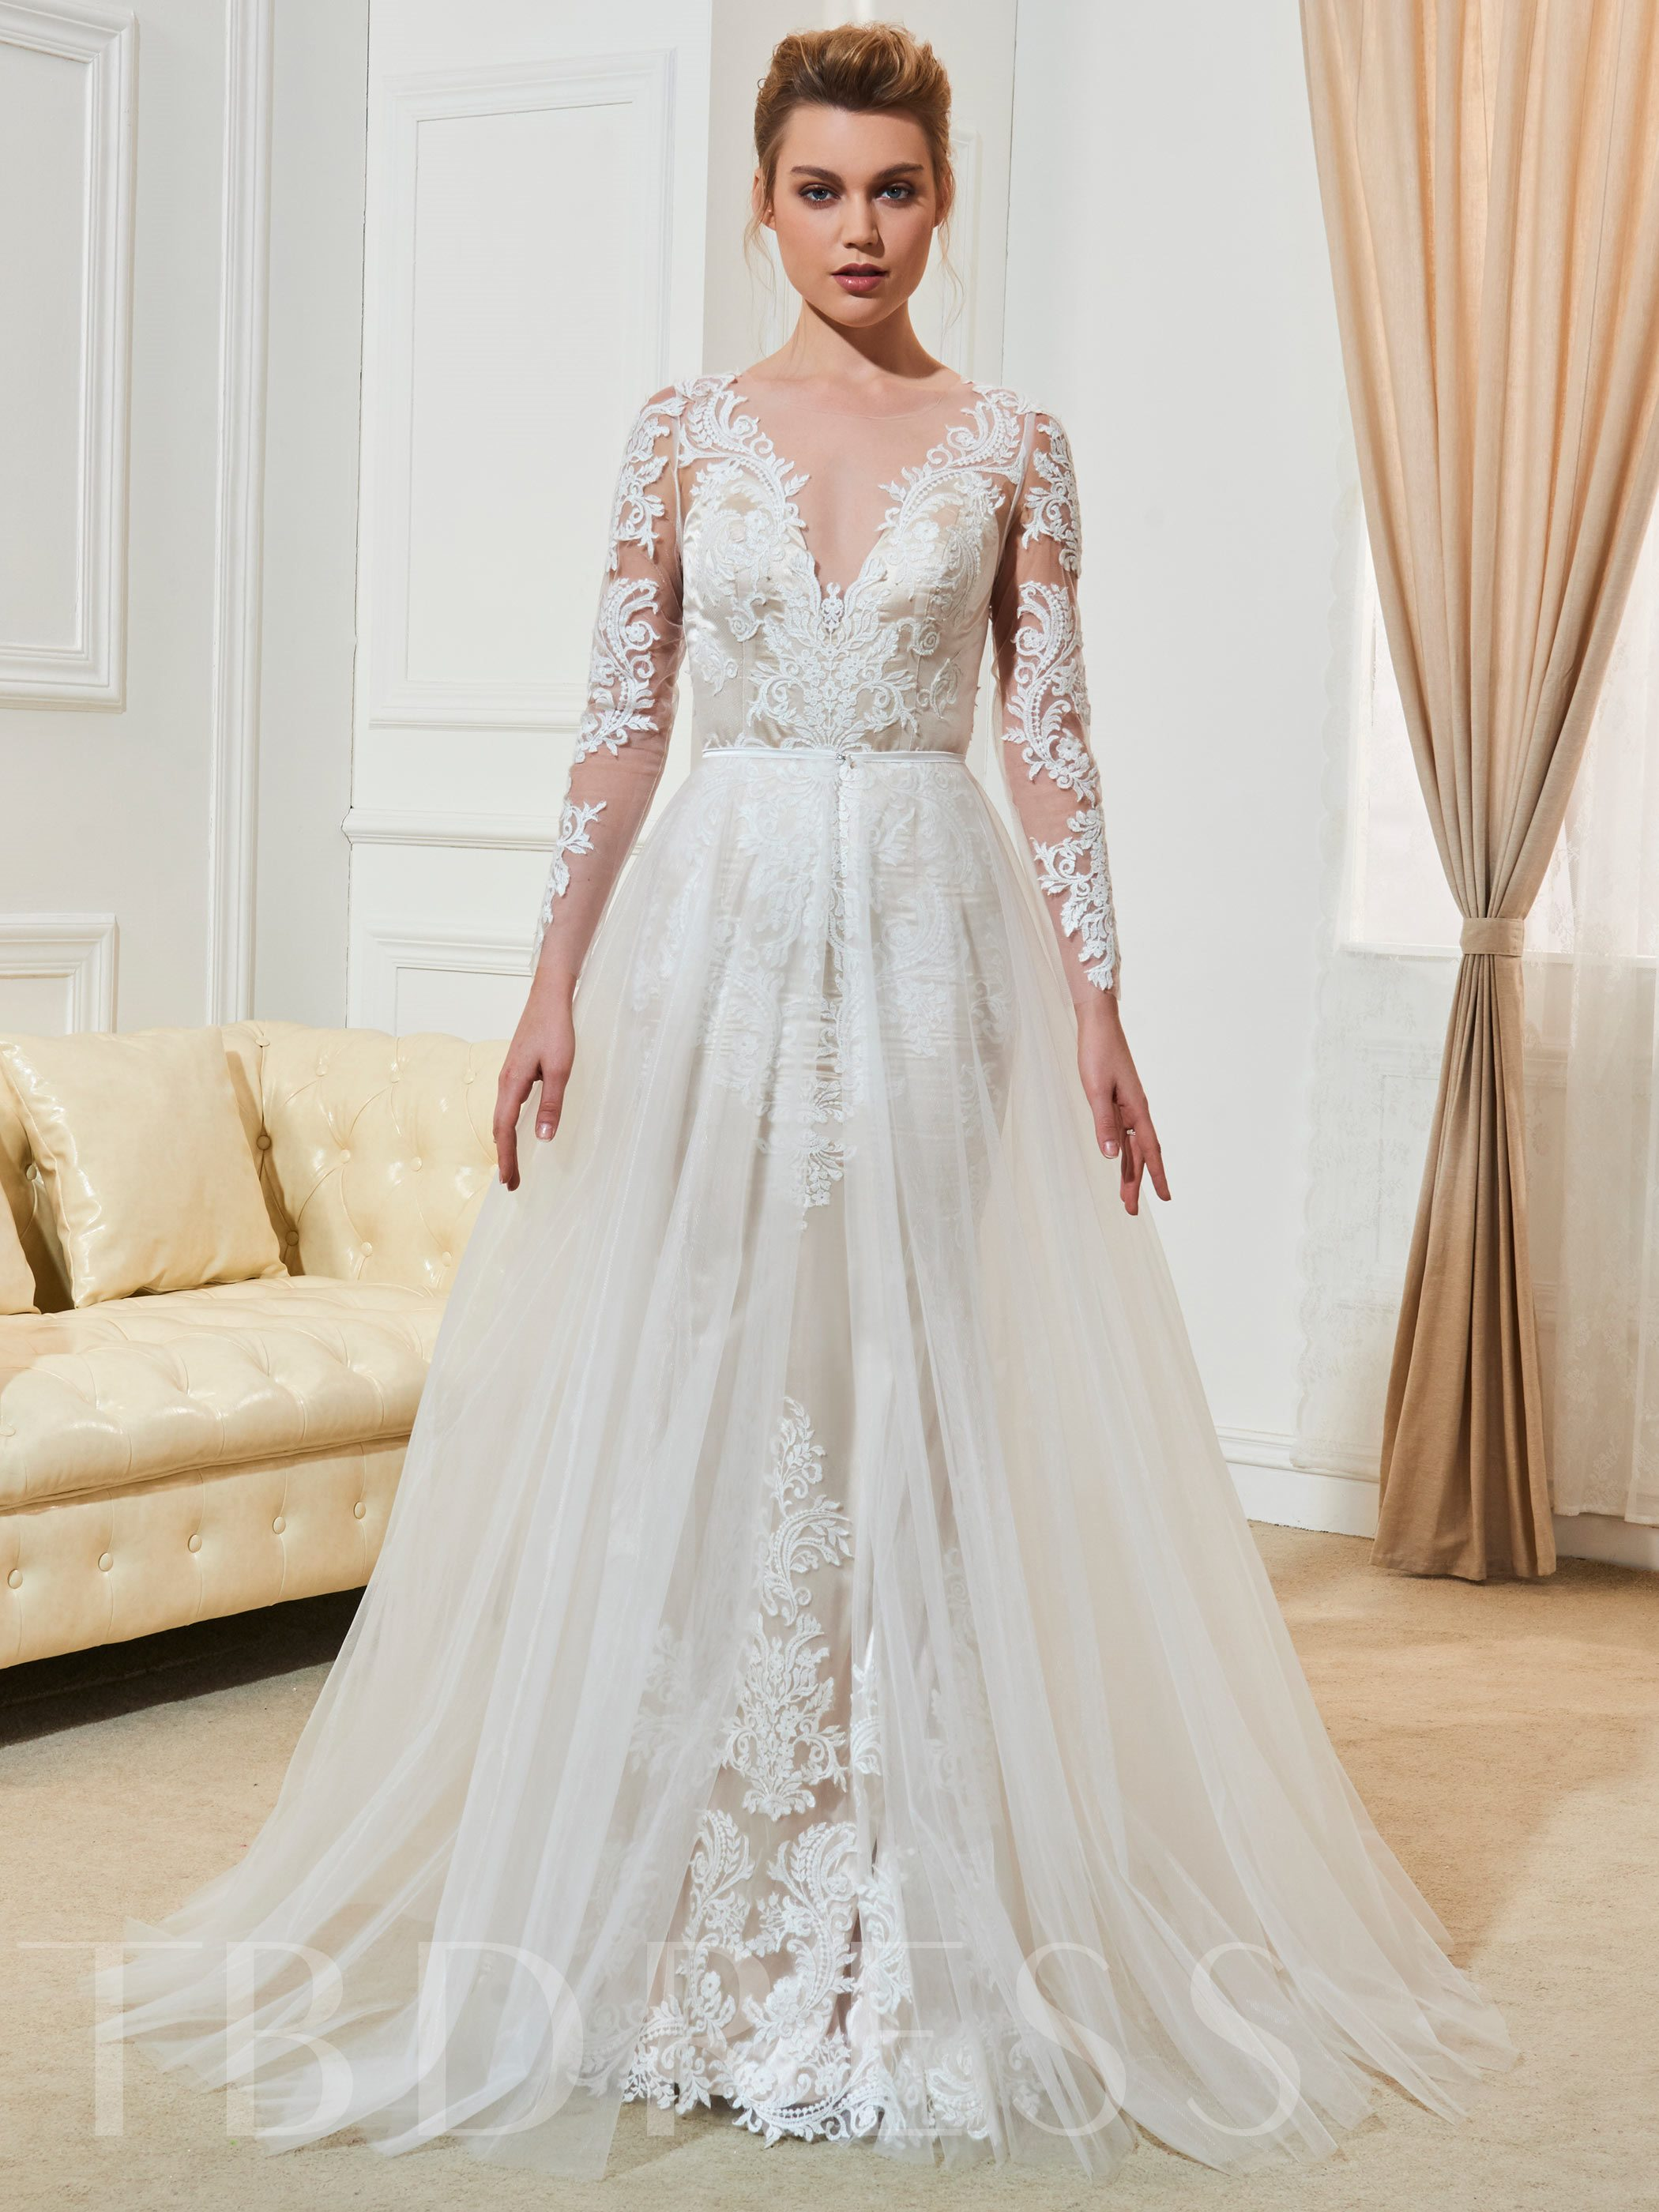 Sheer Scoop Neck Appliques Bridal Gown With Long Sleeves 12770529